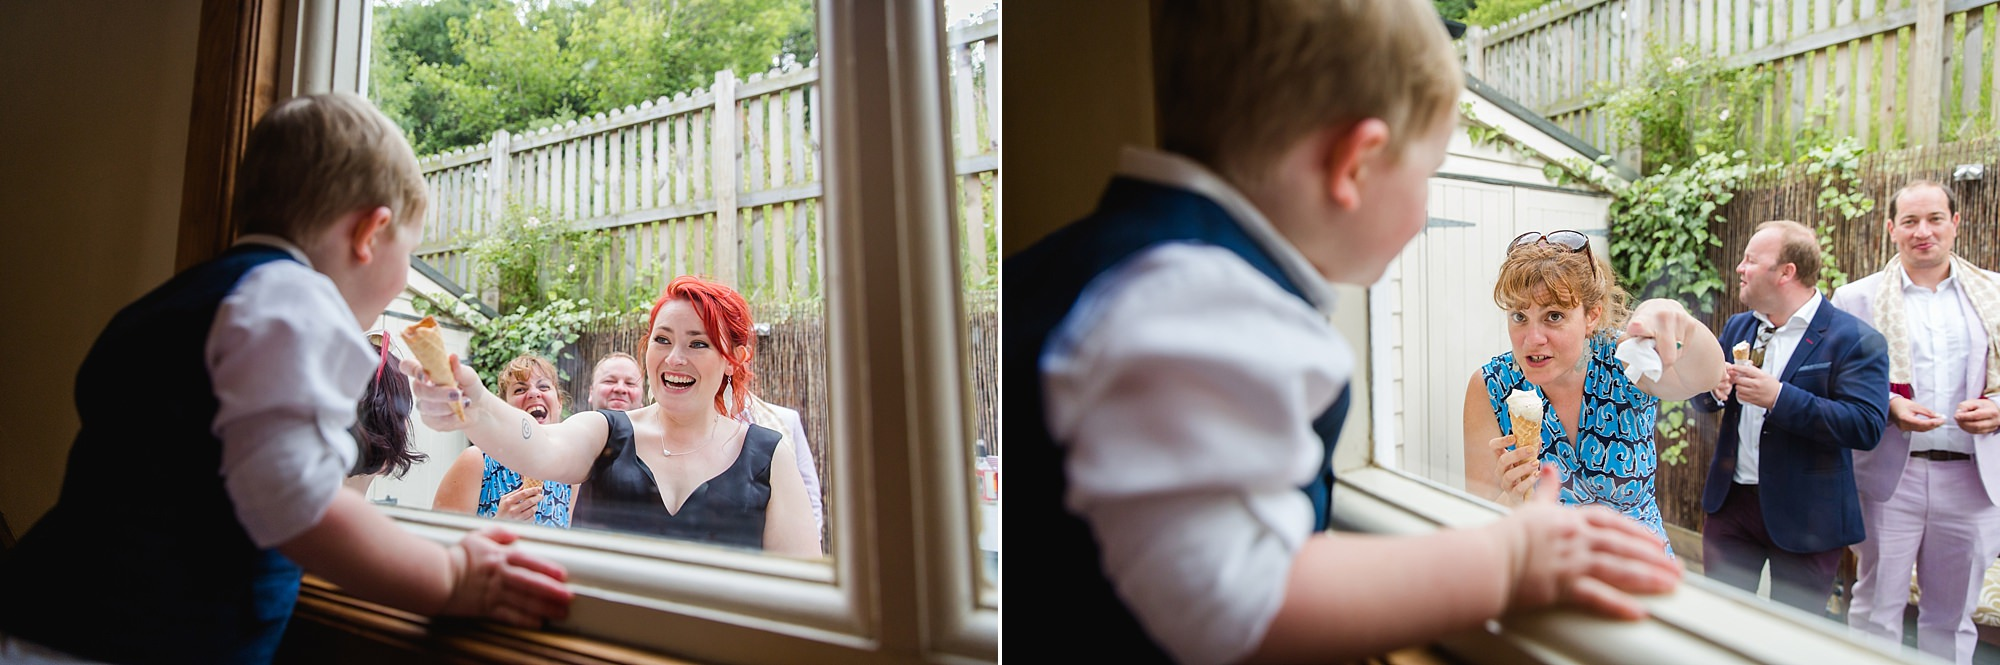 Beacon House wedding guest looks at bride holding ice cream cone through a window